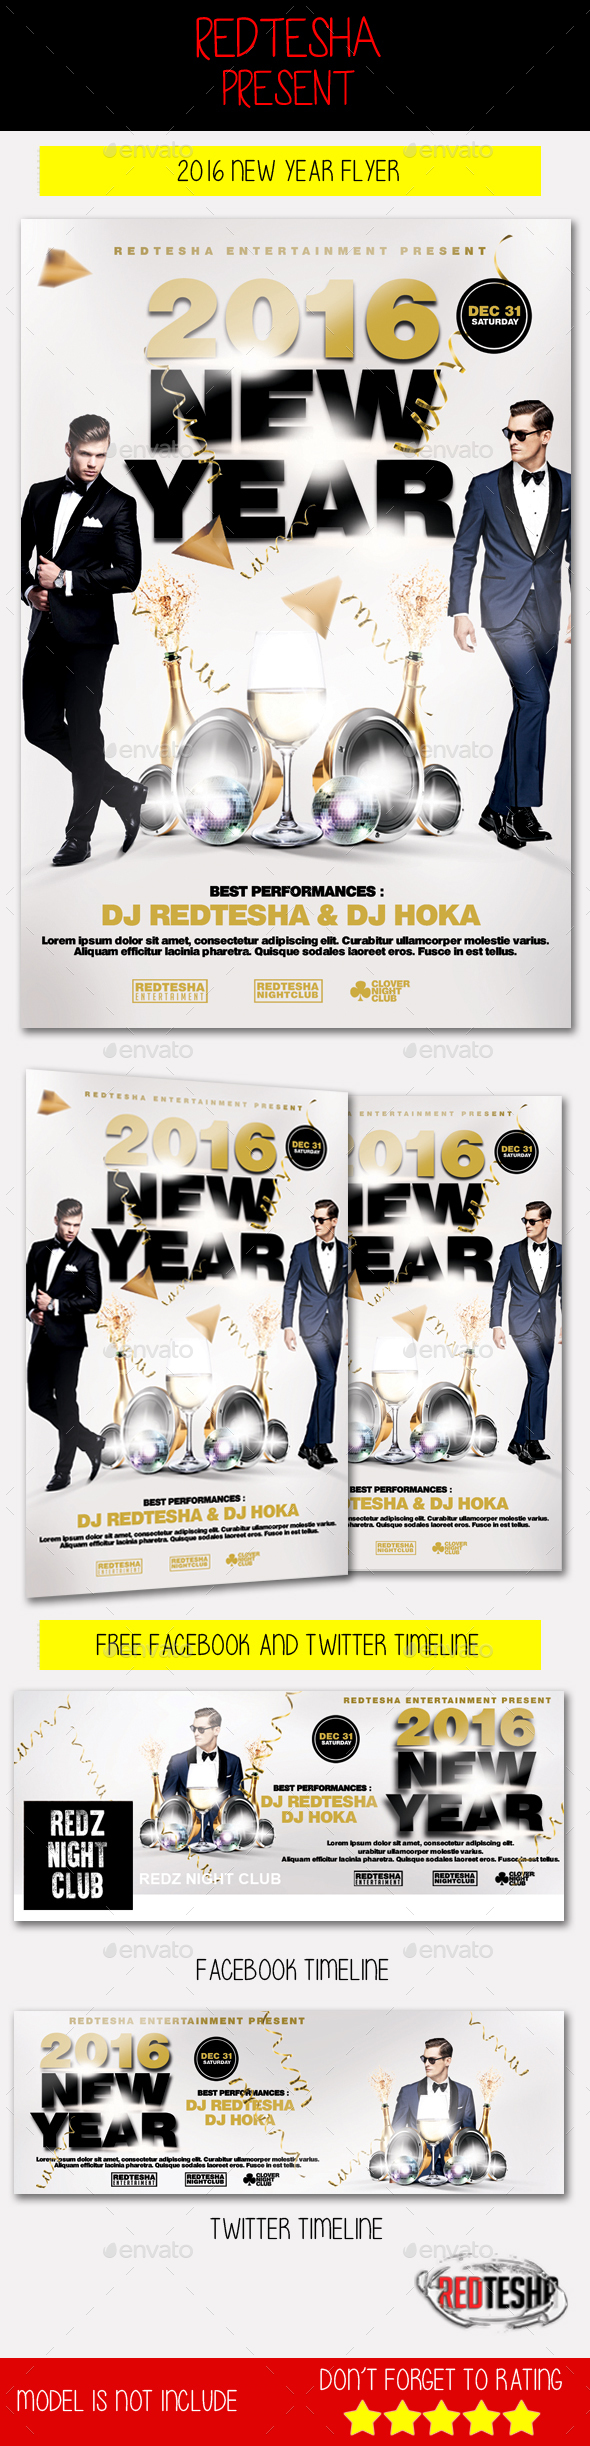 2016 New Year Flyer - Holidays Events